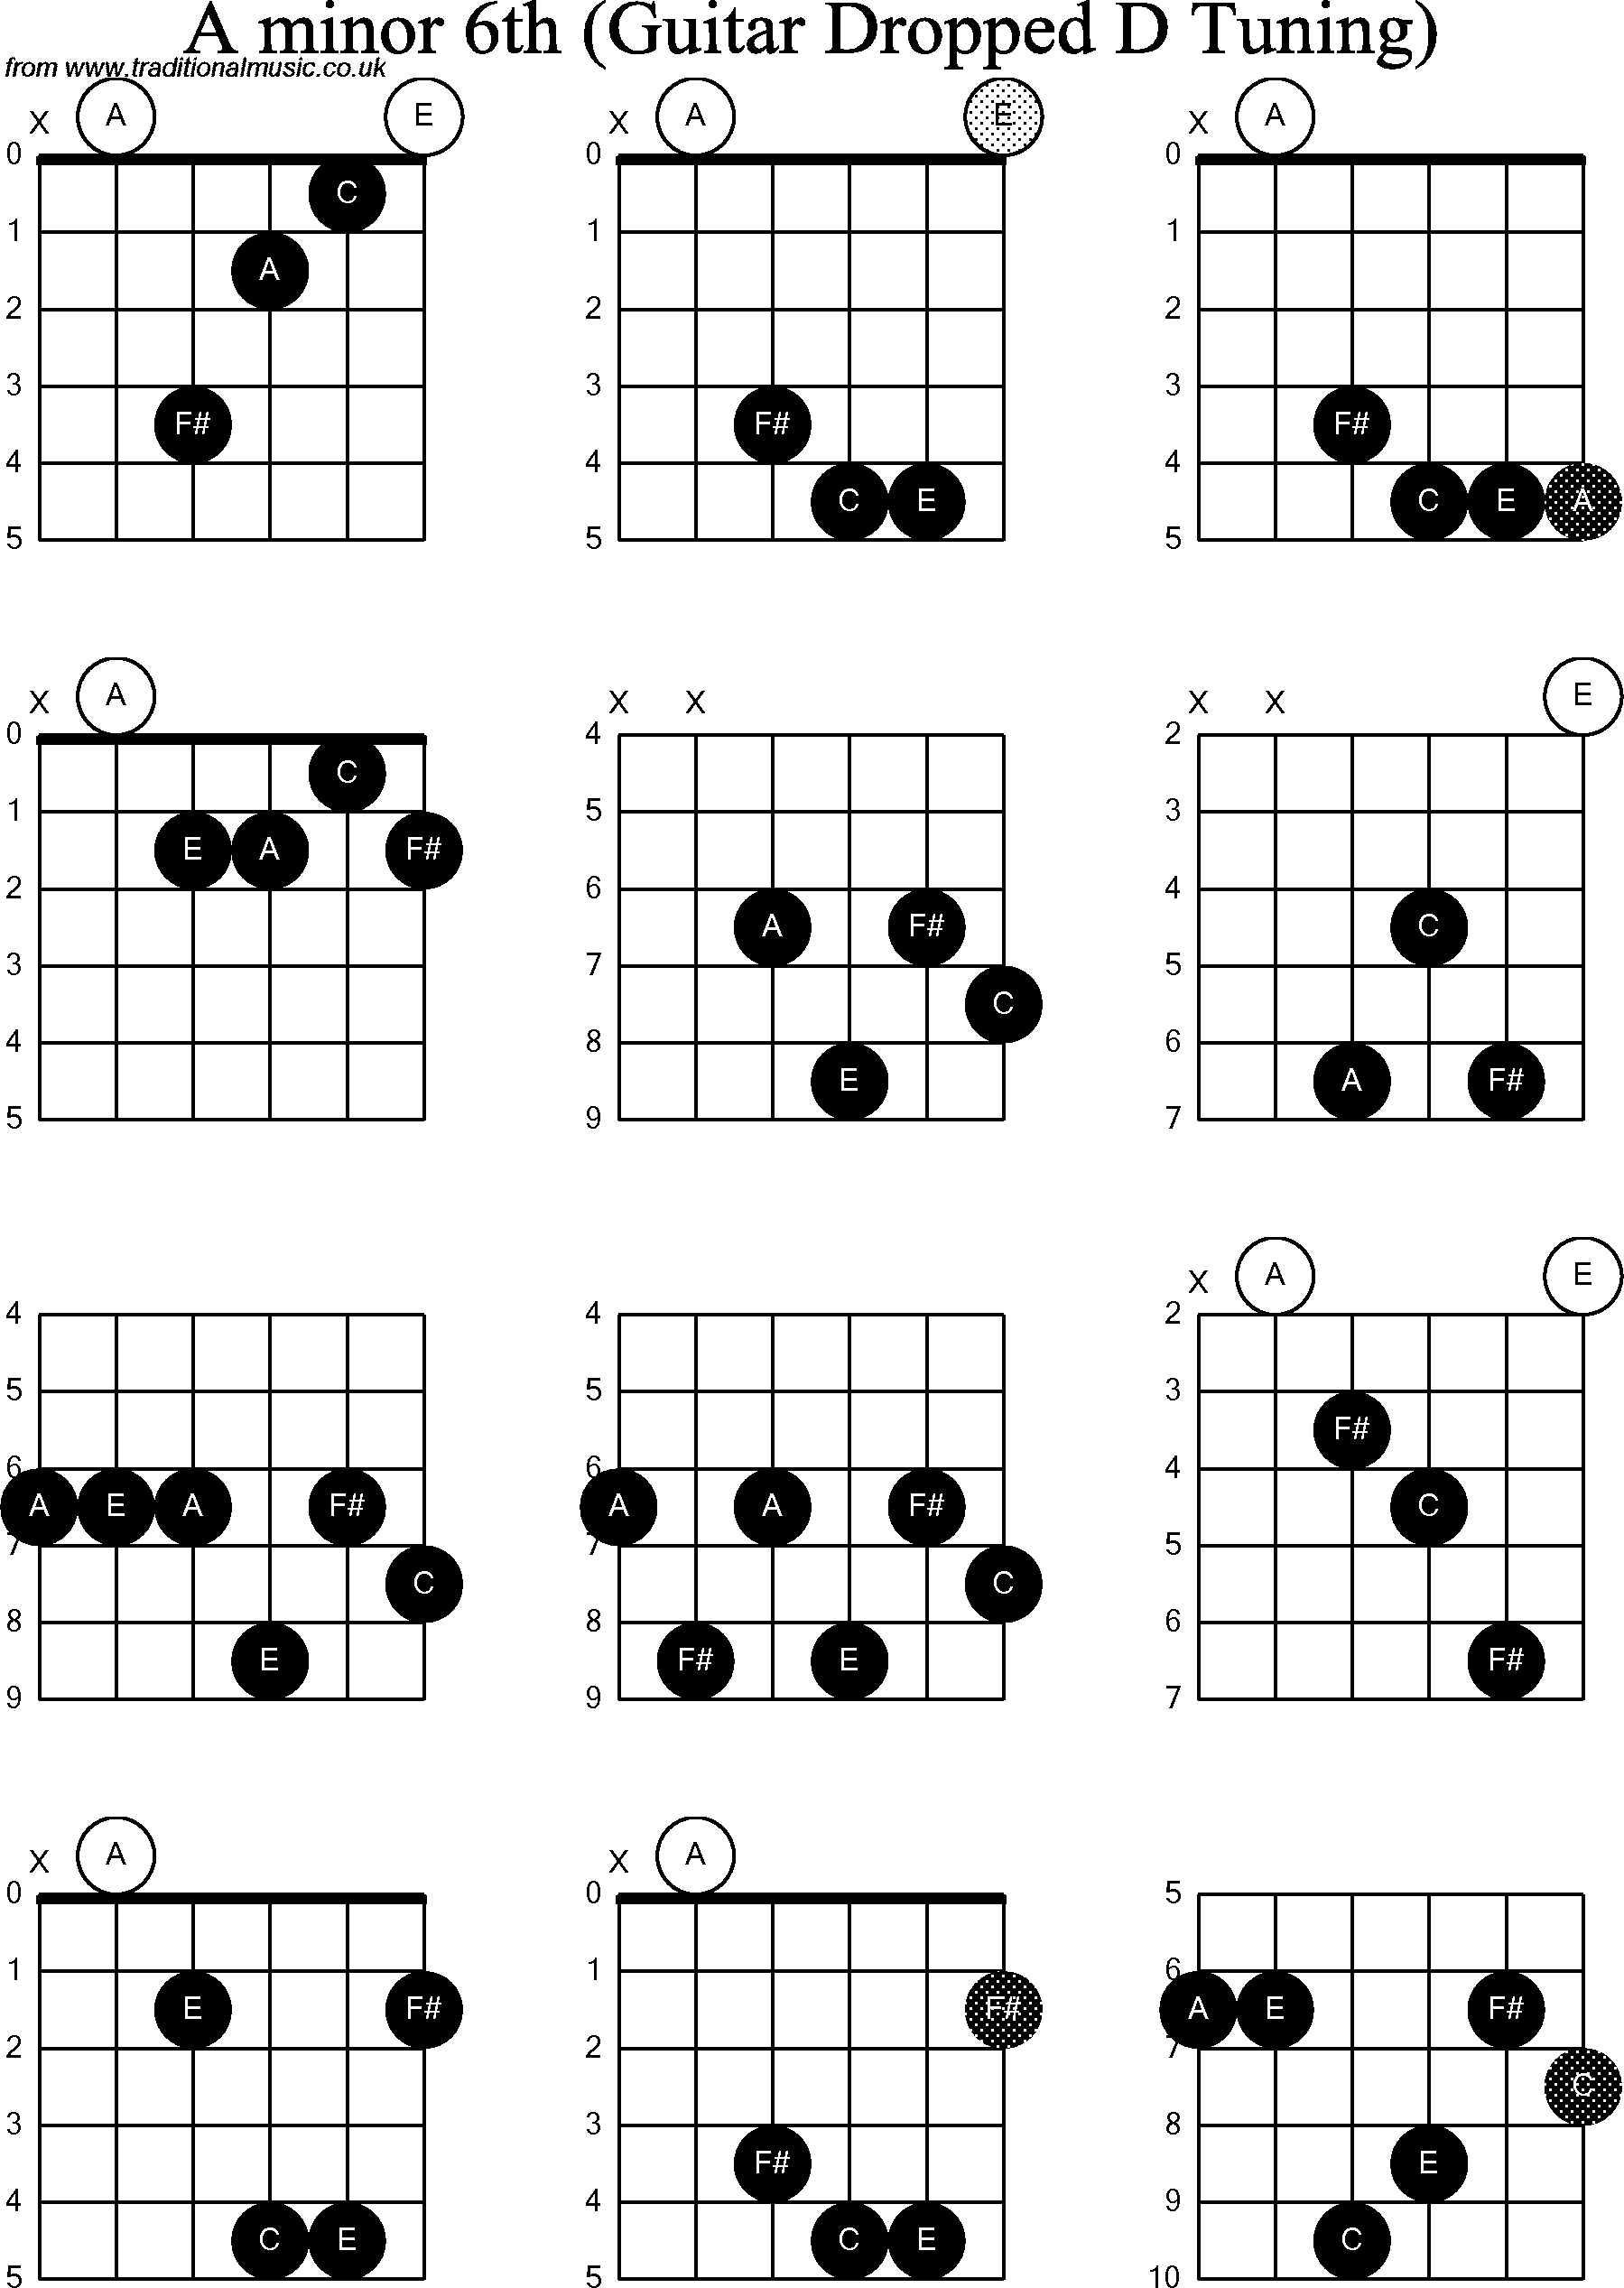 Chord Diagrams For Dropped D Guitardadgbe A Minor6th